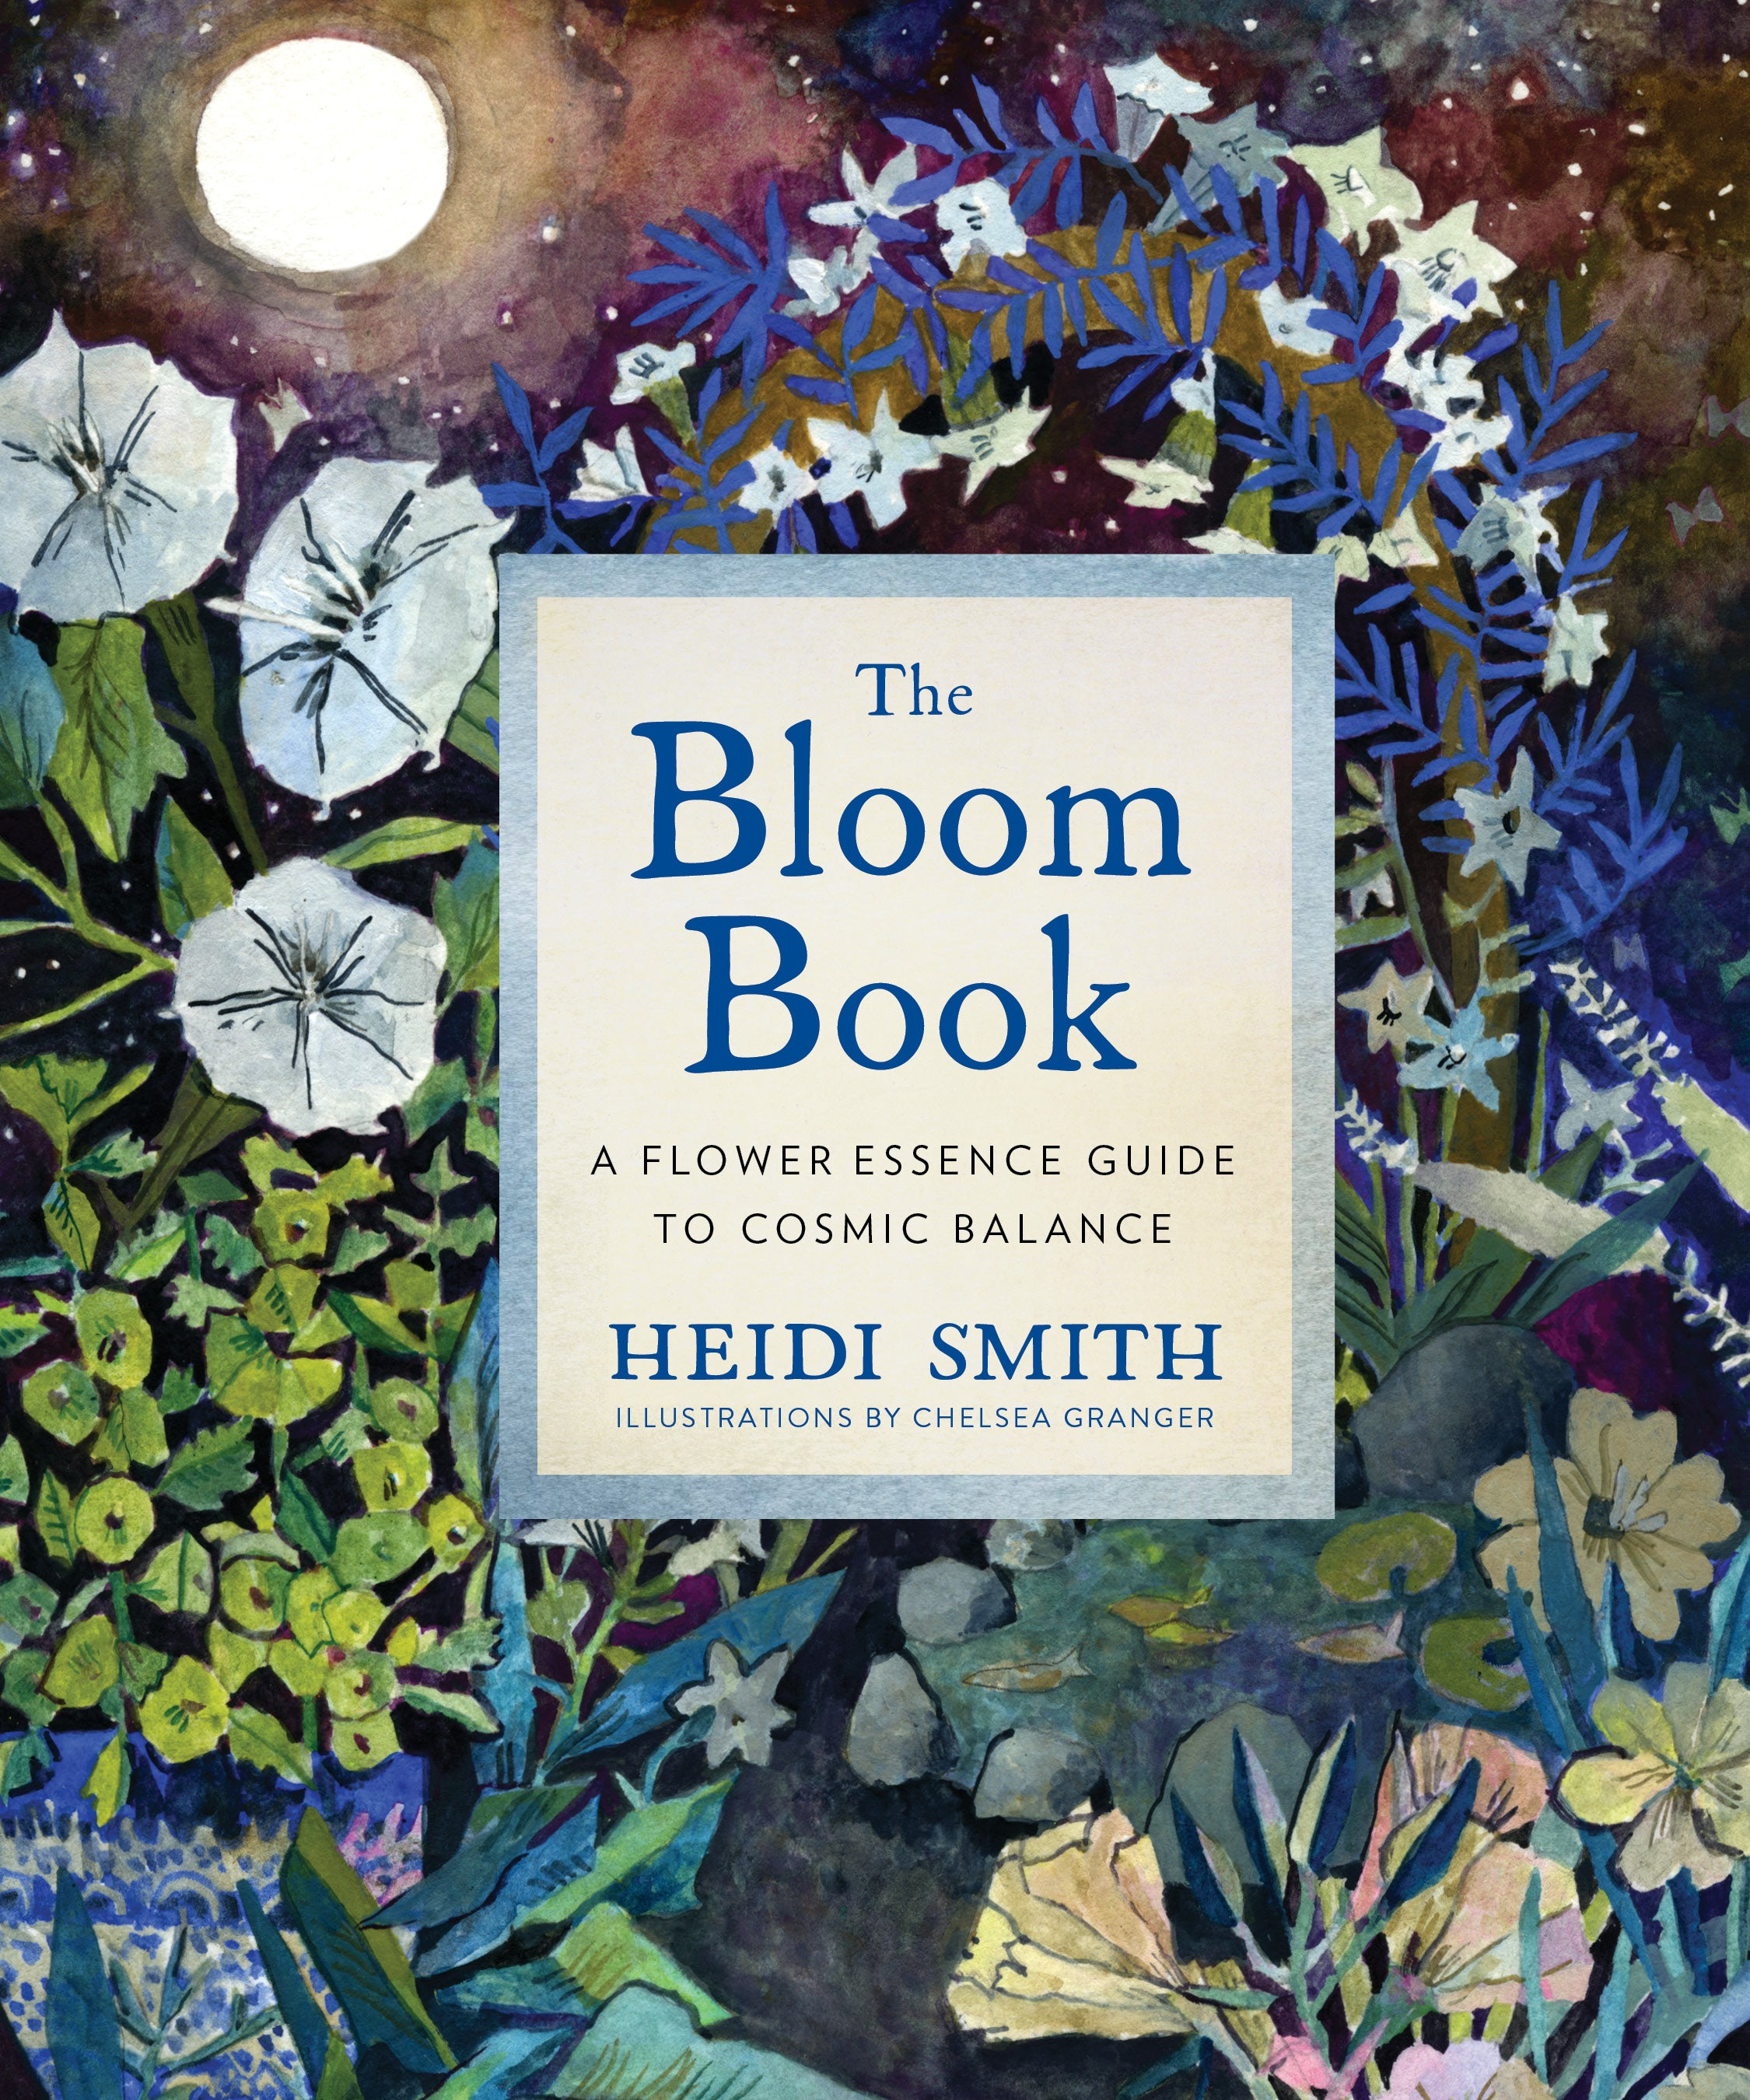 The Bloom Book